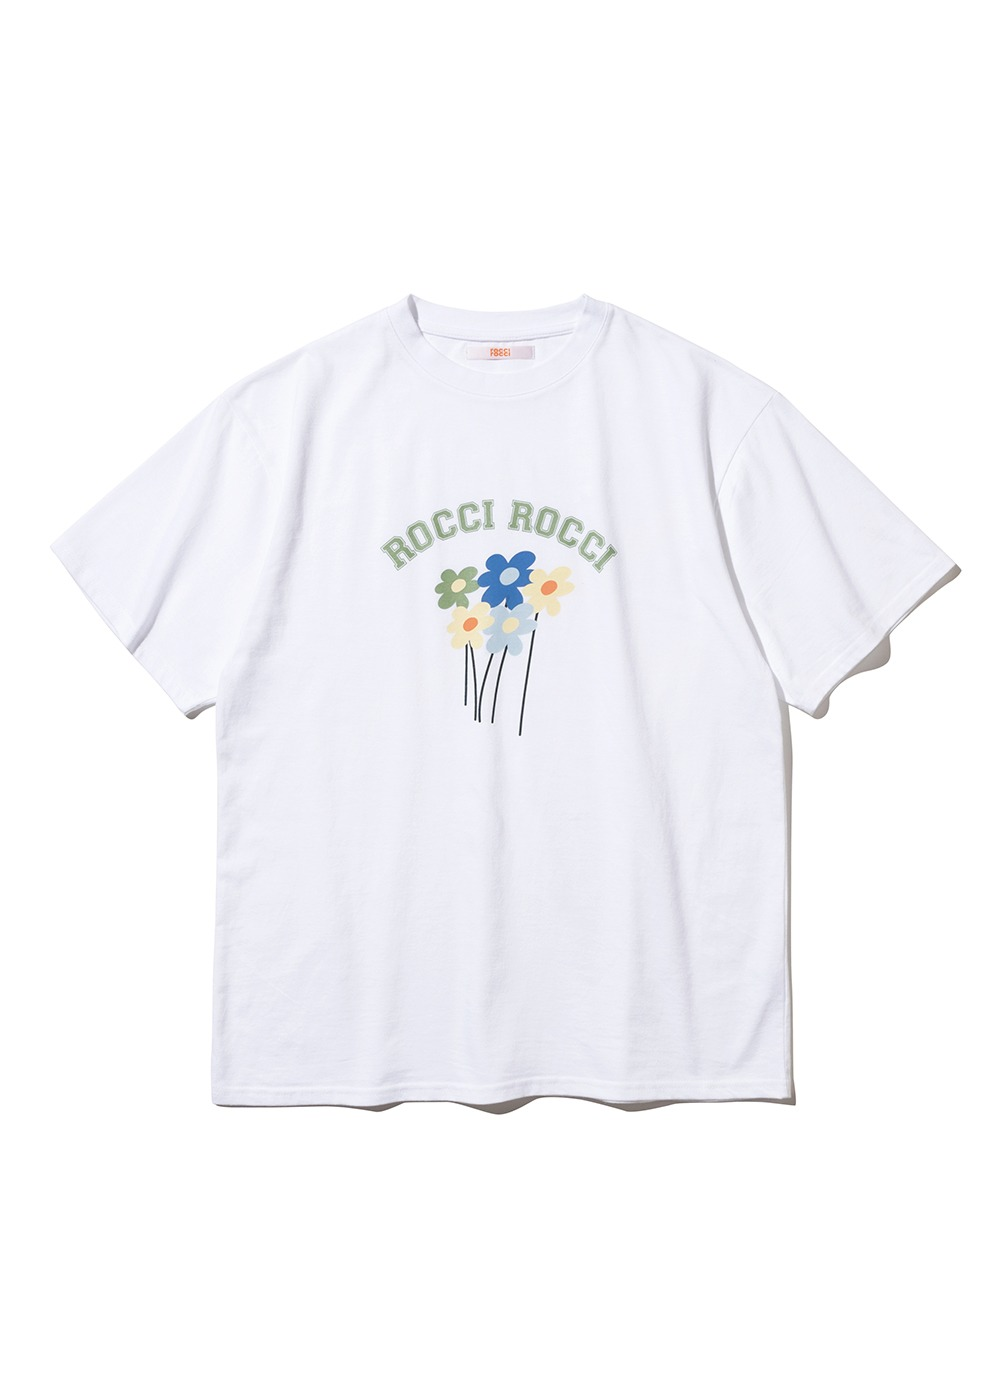 Arch Logo Flower T-shirt [WHITE]Arch Logo Flower T-shirt [WHITE]자체브랜드